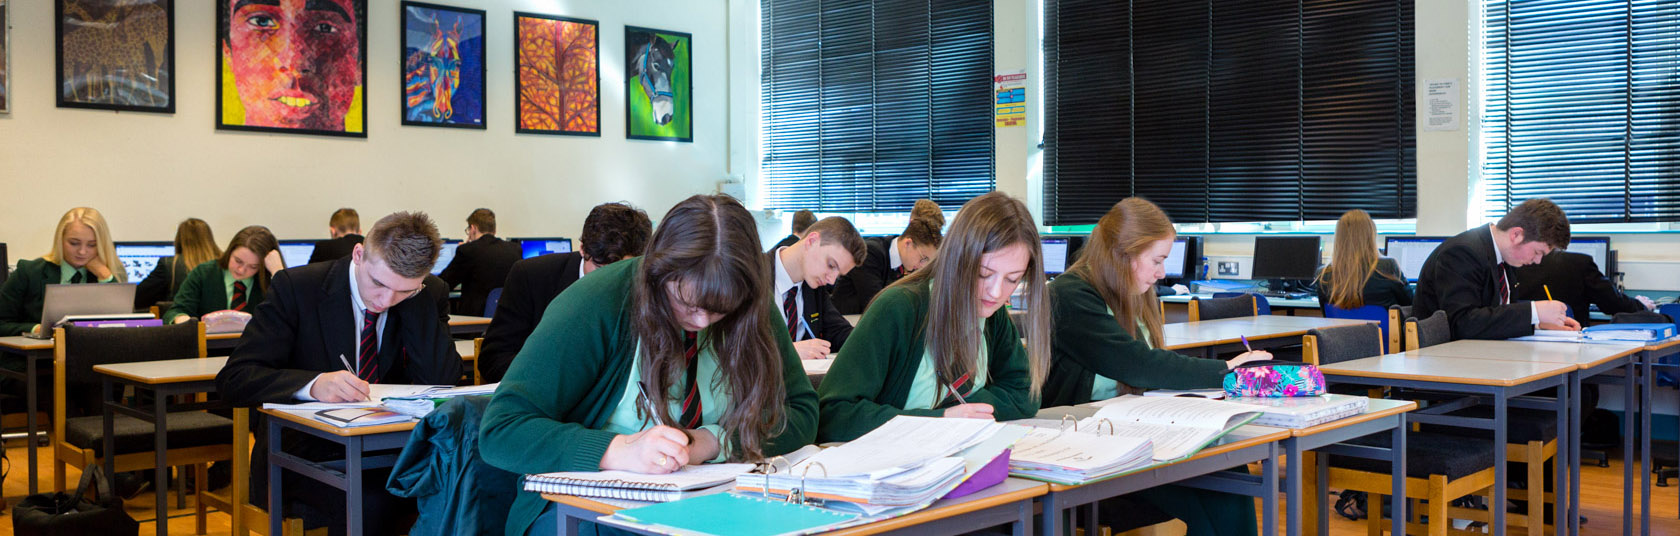 Sixth Form Students in Class